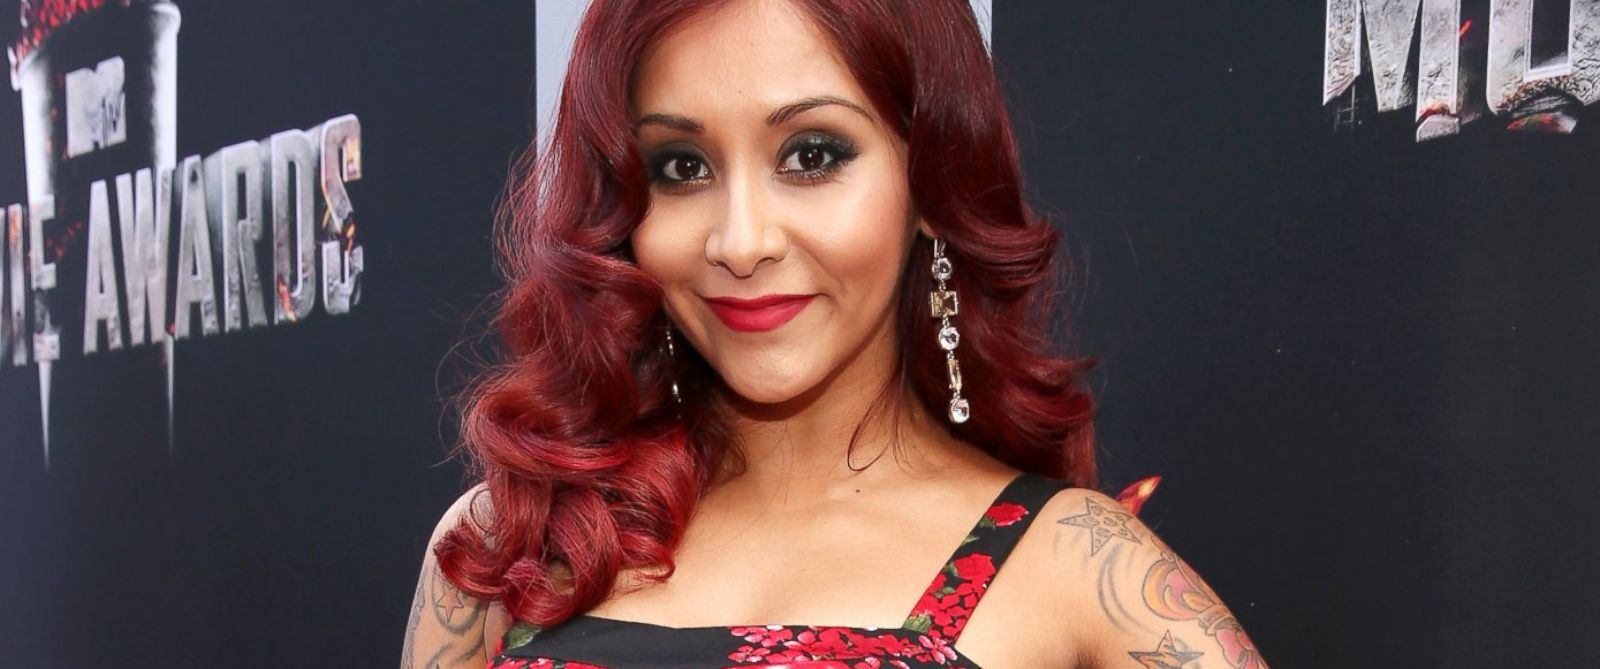 PHOTO: Nicole Snooki Polizzi attends the 2014 MTV Movie Awards at Nokia Theatre L.A. Live, April 13, 2014, in Los Angeles.V